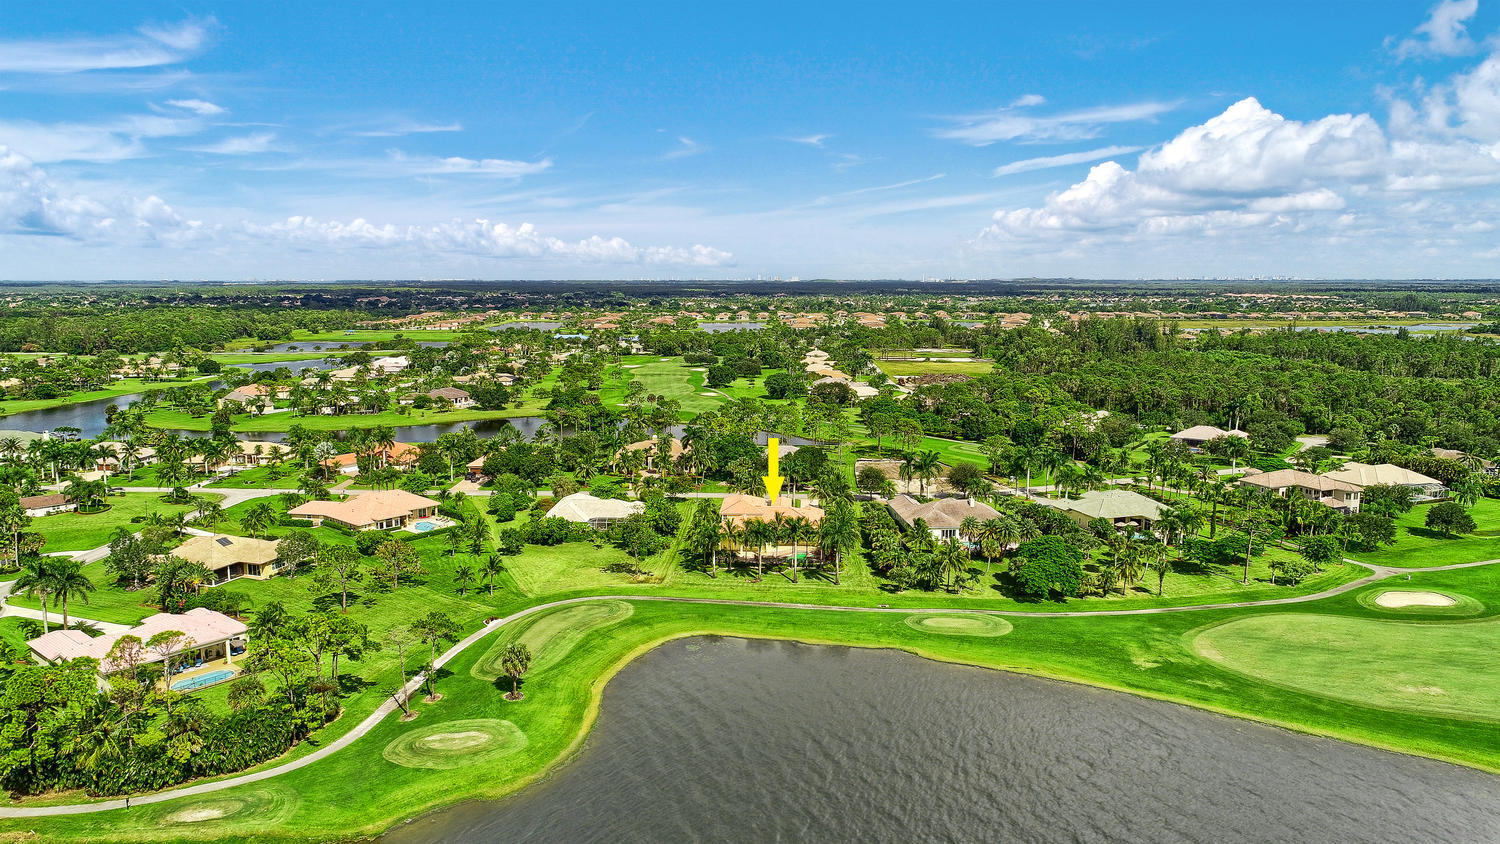 7731 Woodsmuir Drive, West Palm Beach, Florida 33412, 6 Bedrooms Bedrooms, ,5.1 BathroomsBathrooms,Single Family,For Sale,BAY HILL ESTATES,Woodsmuir,RX-10392992